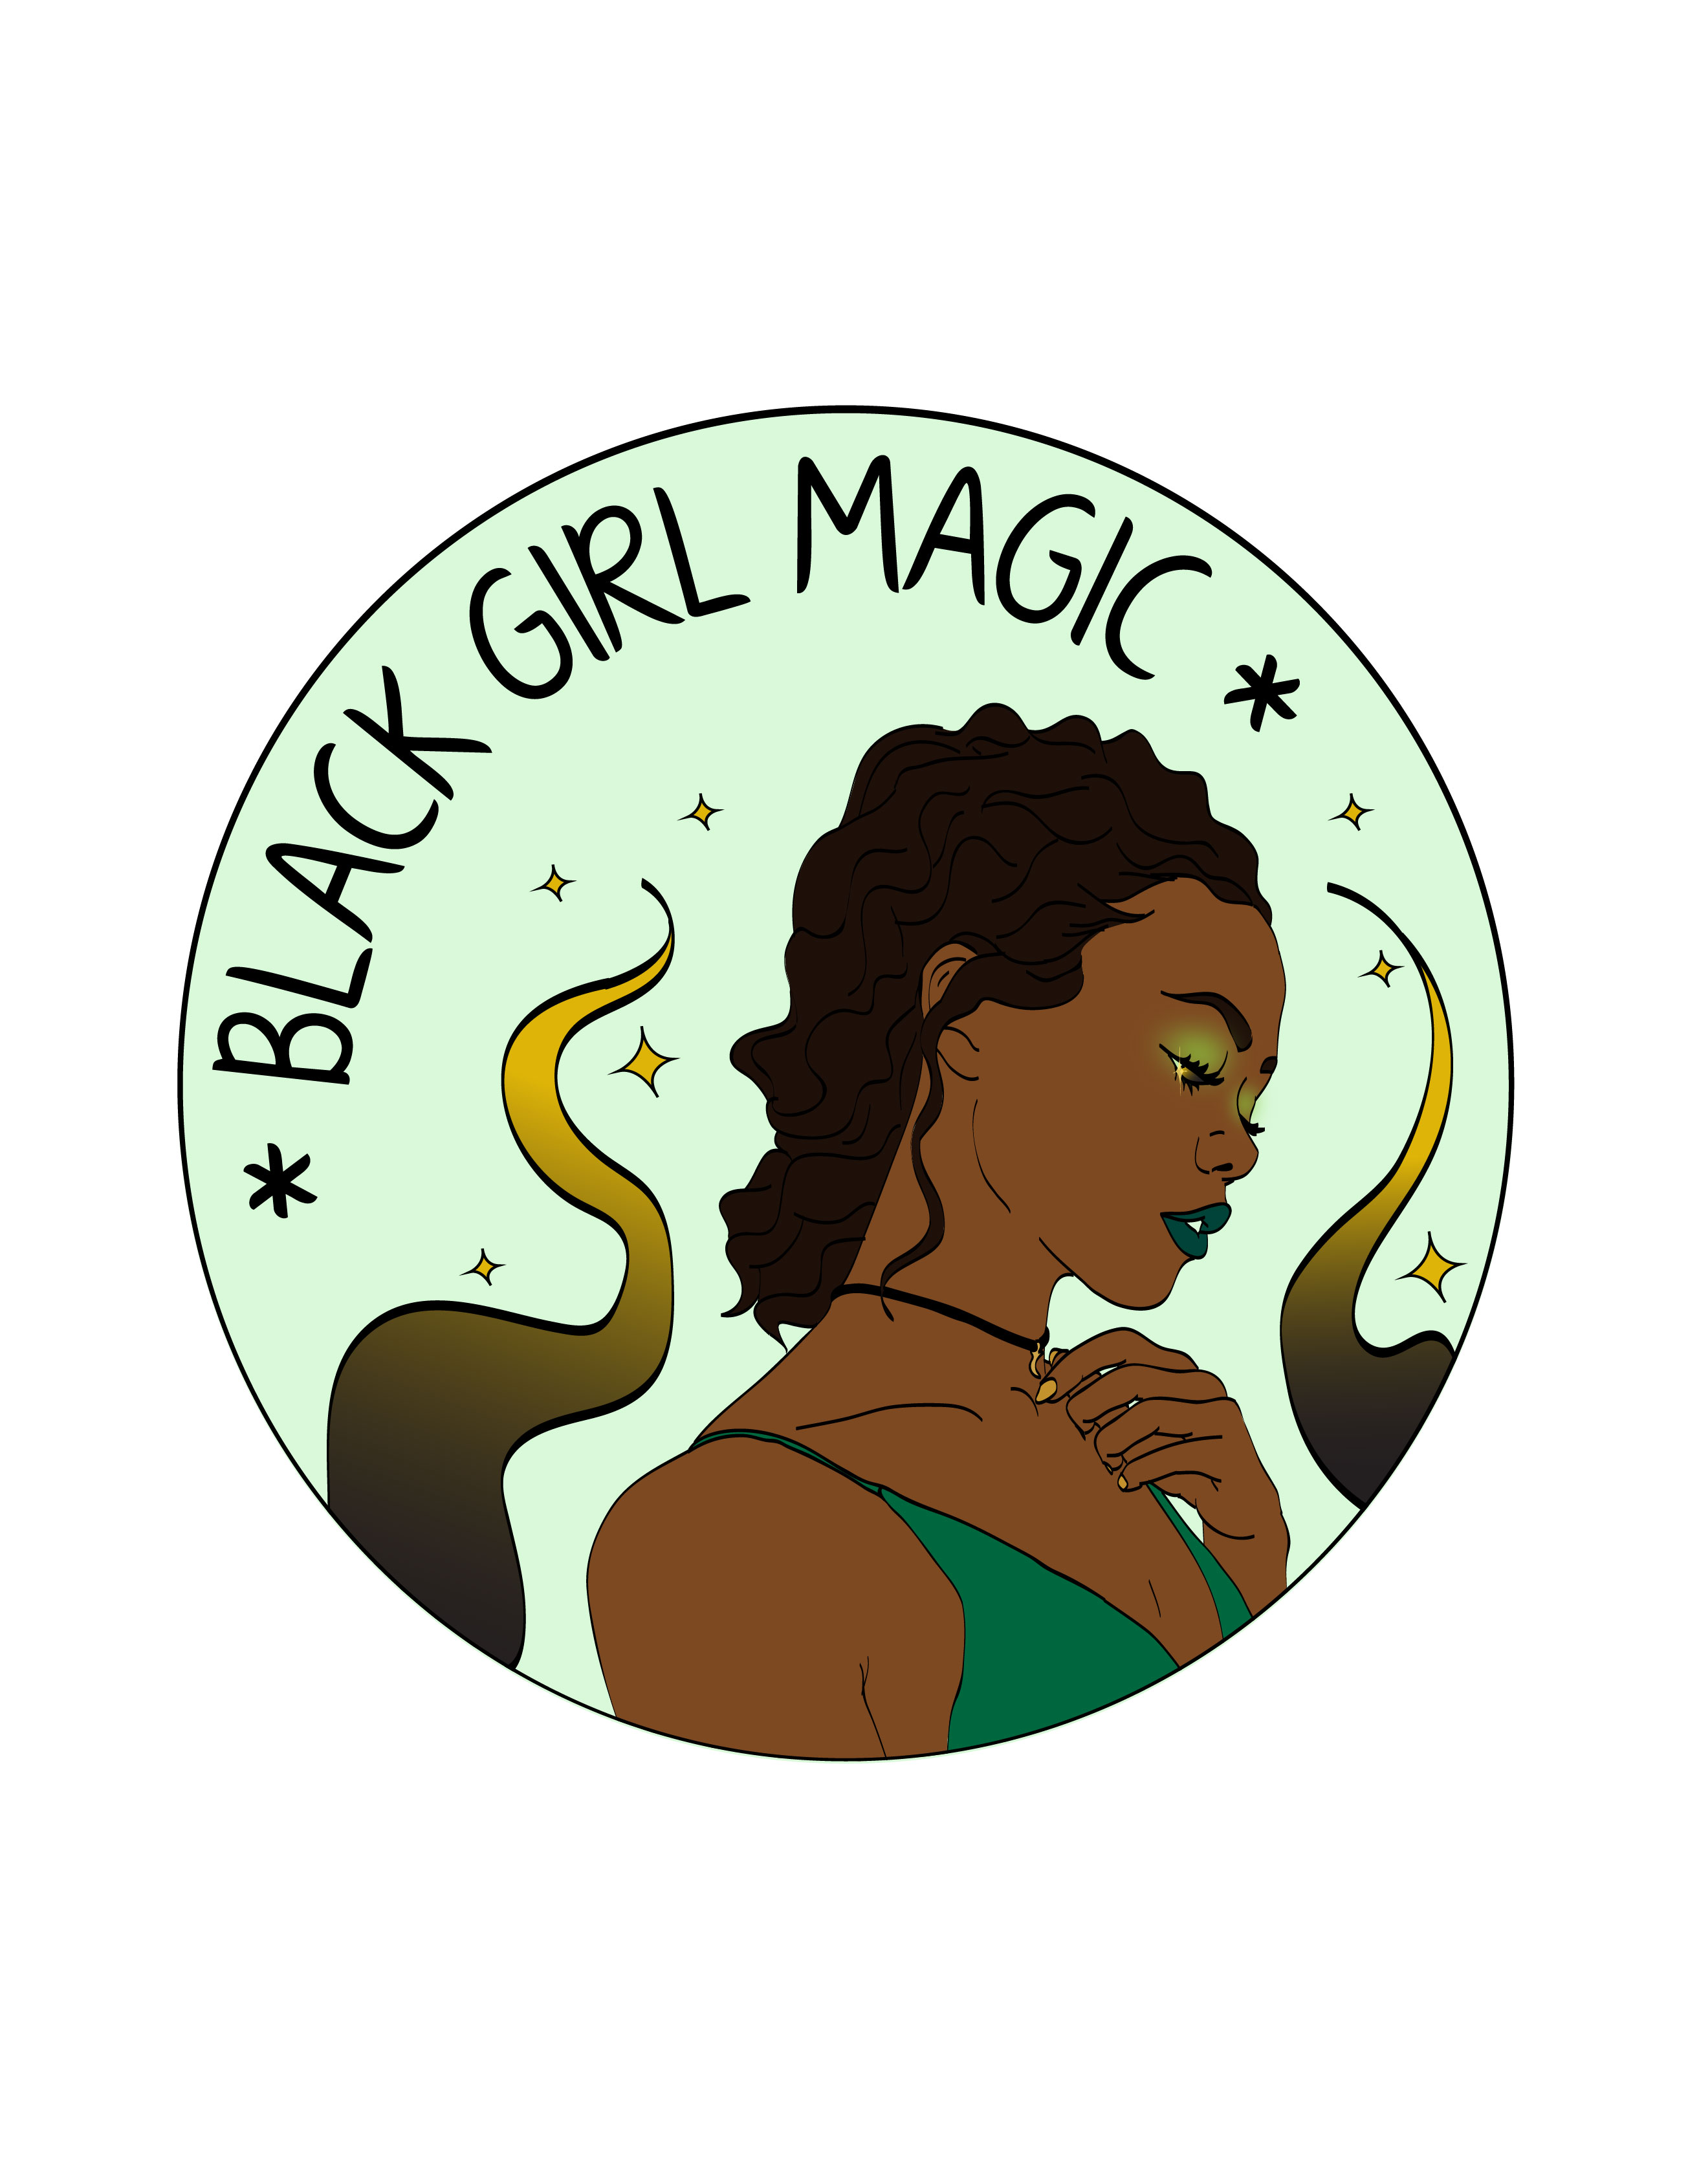 Black Girl Magic sold by Flower Morgue Illustration.